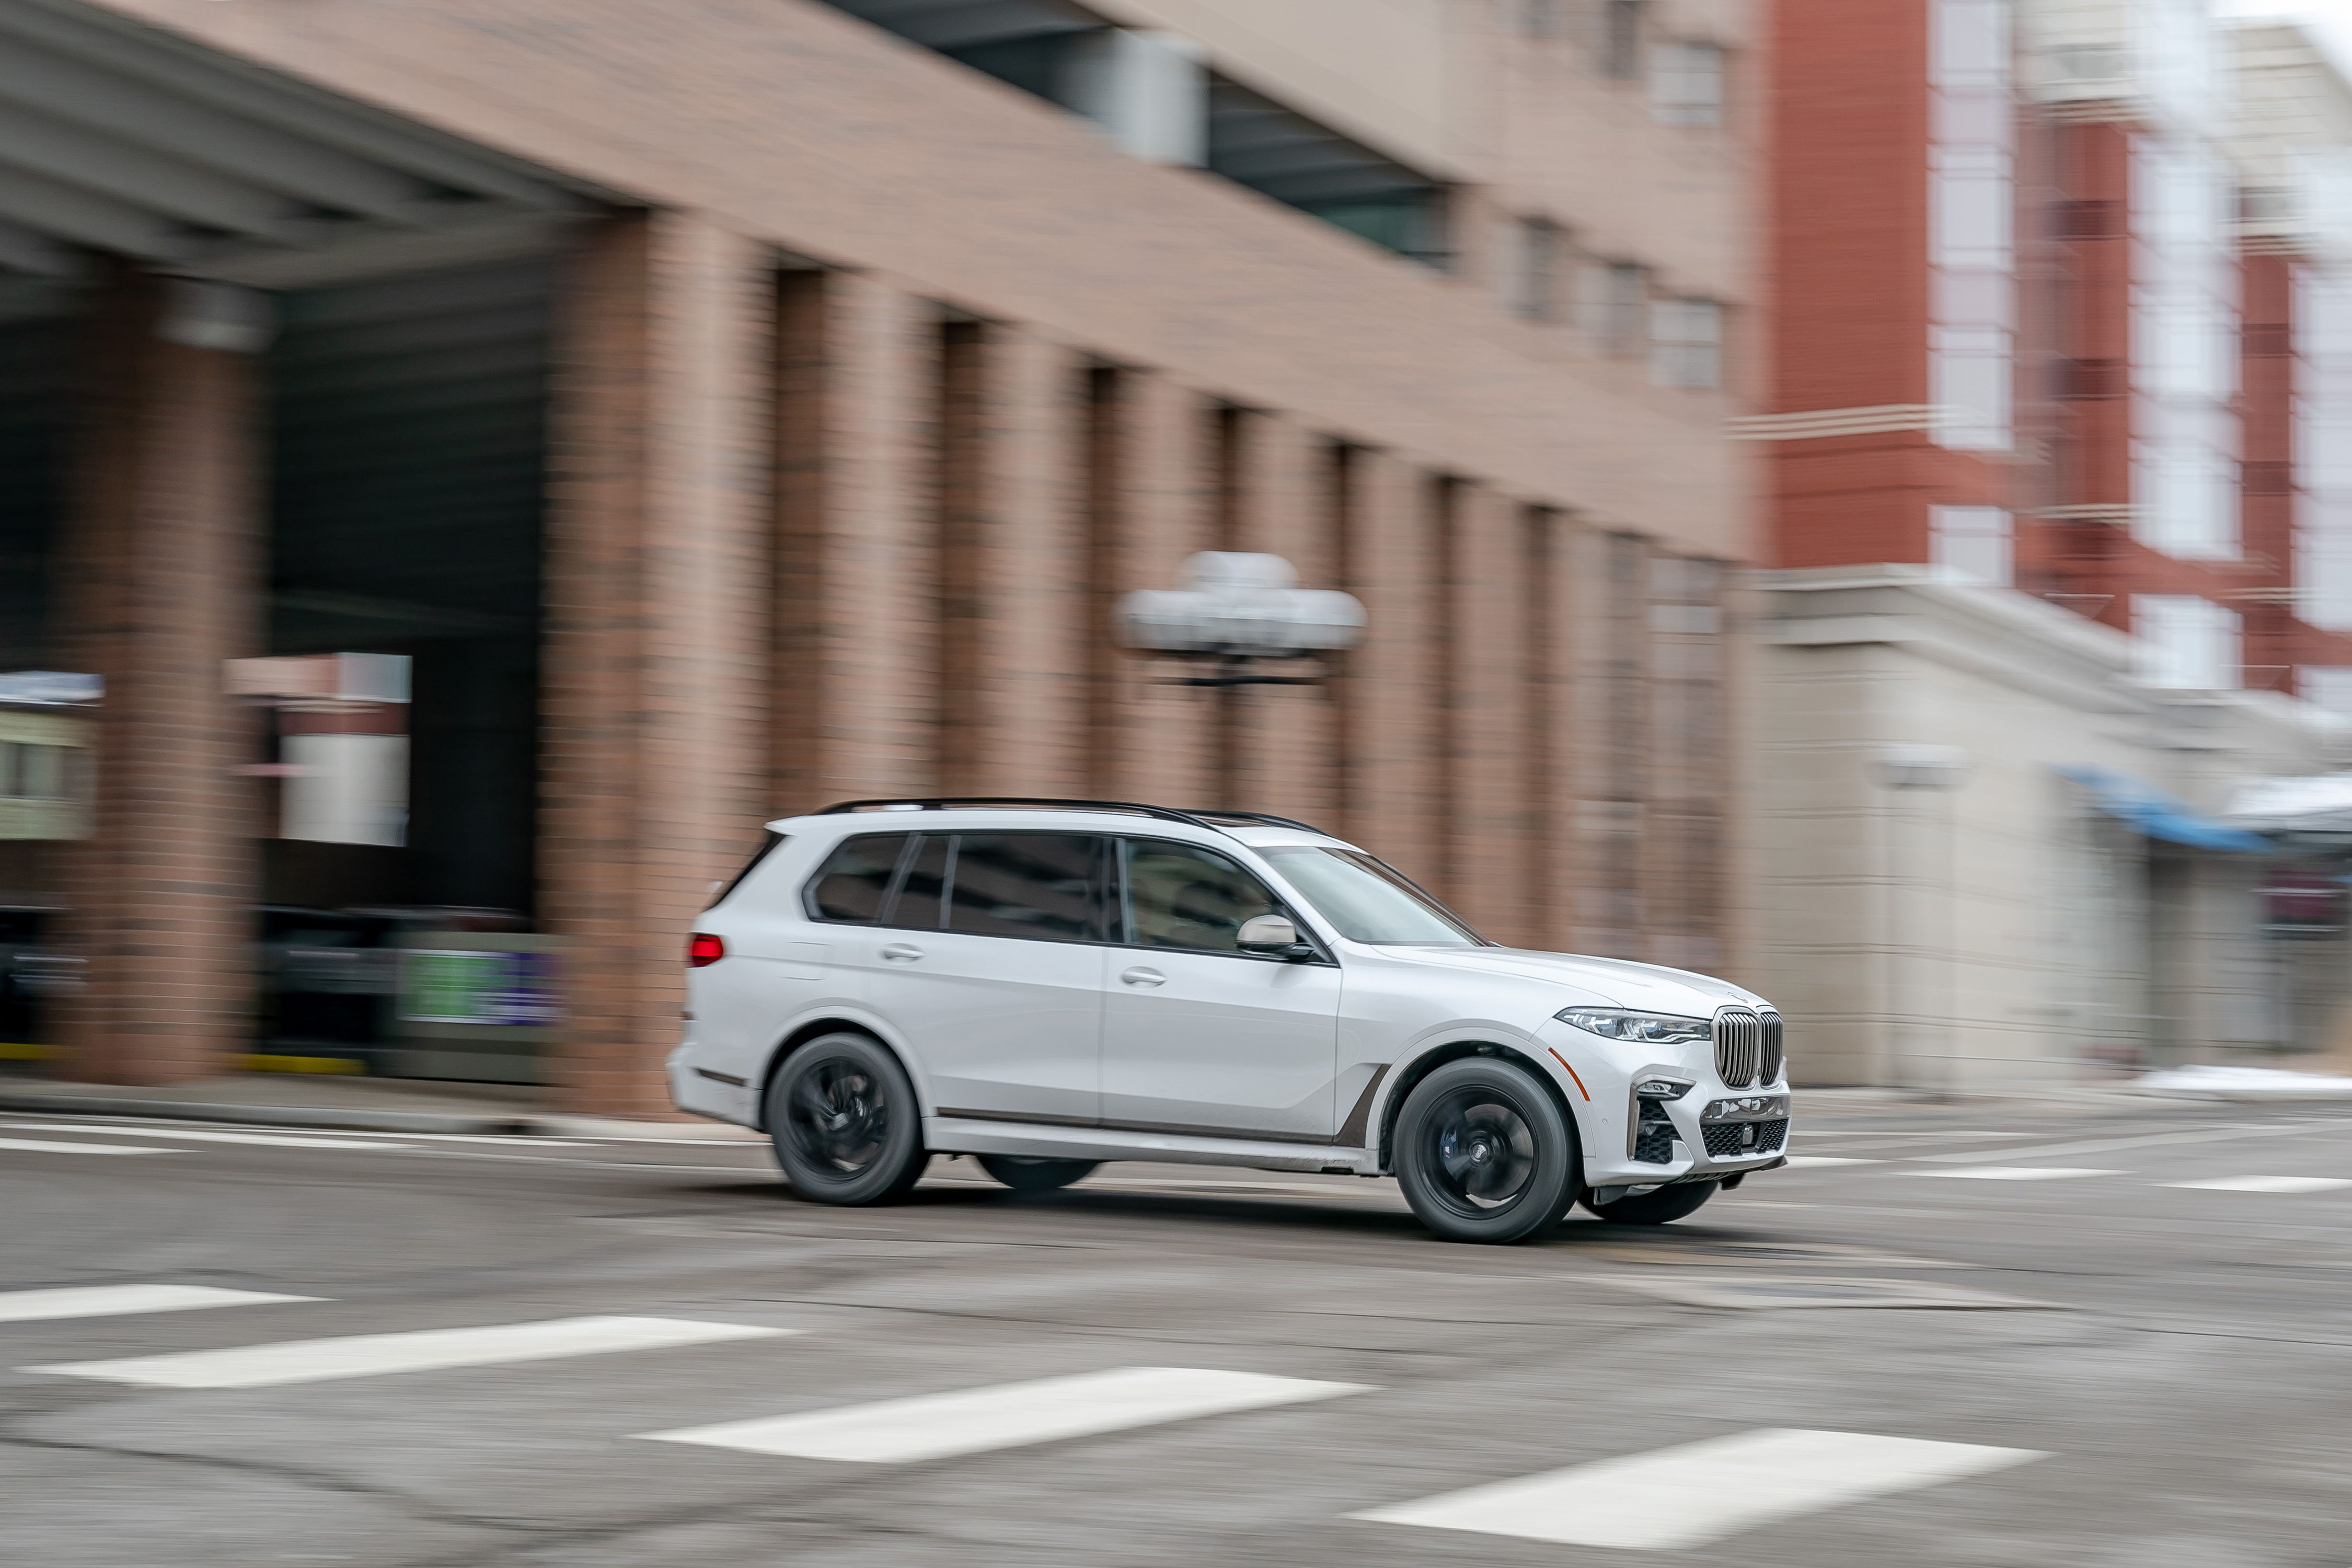 2020 Bmw X7 M50i Long Term Road Test 30 000 Mile Update